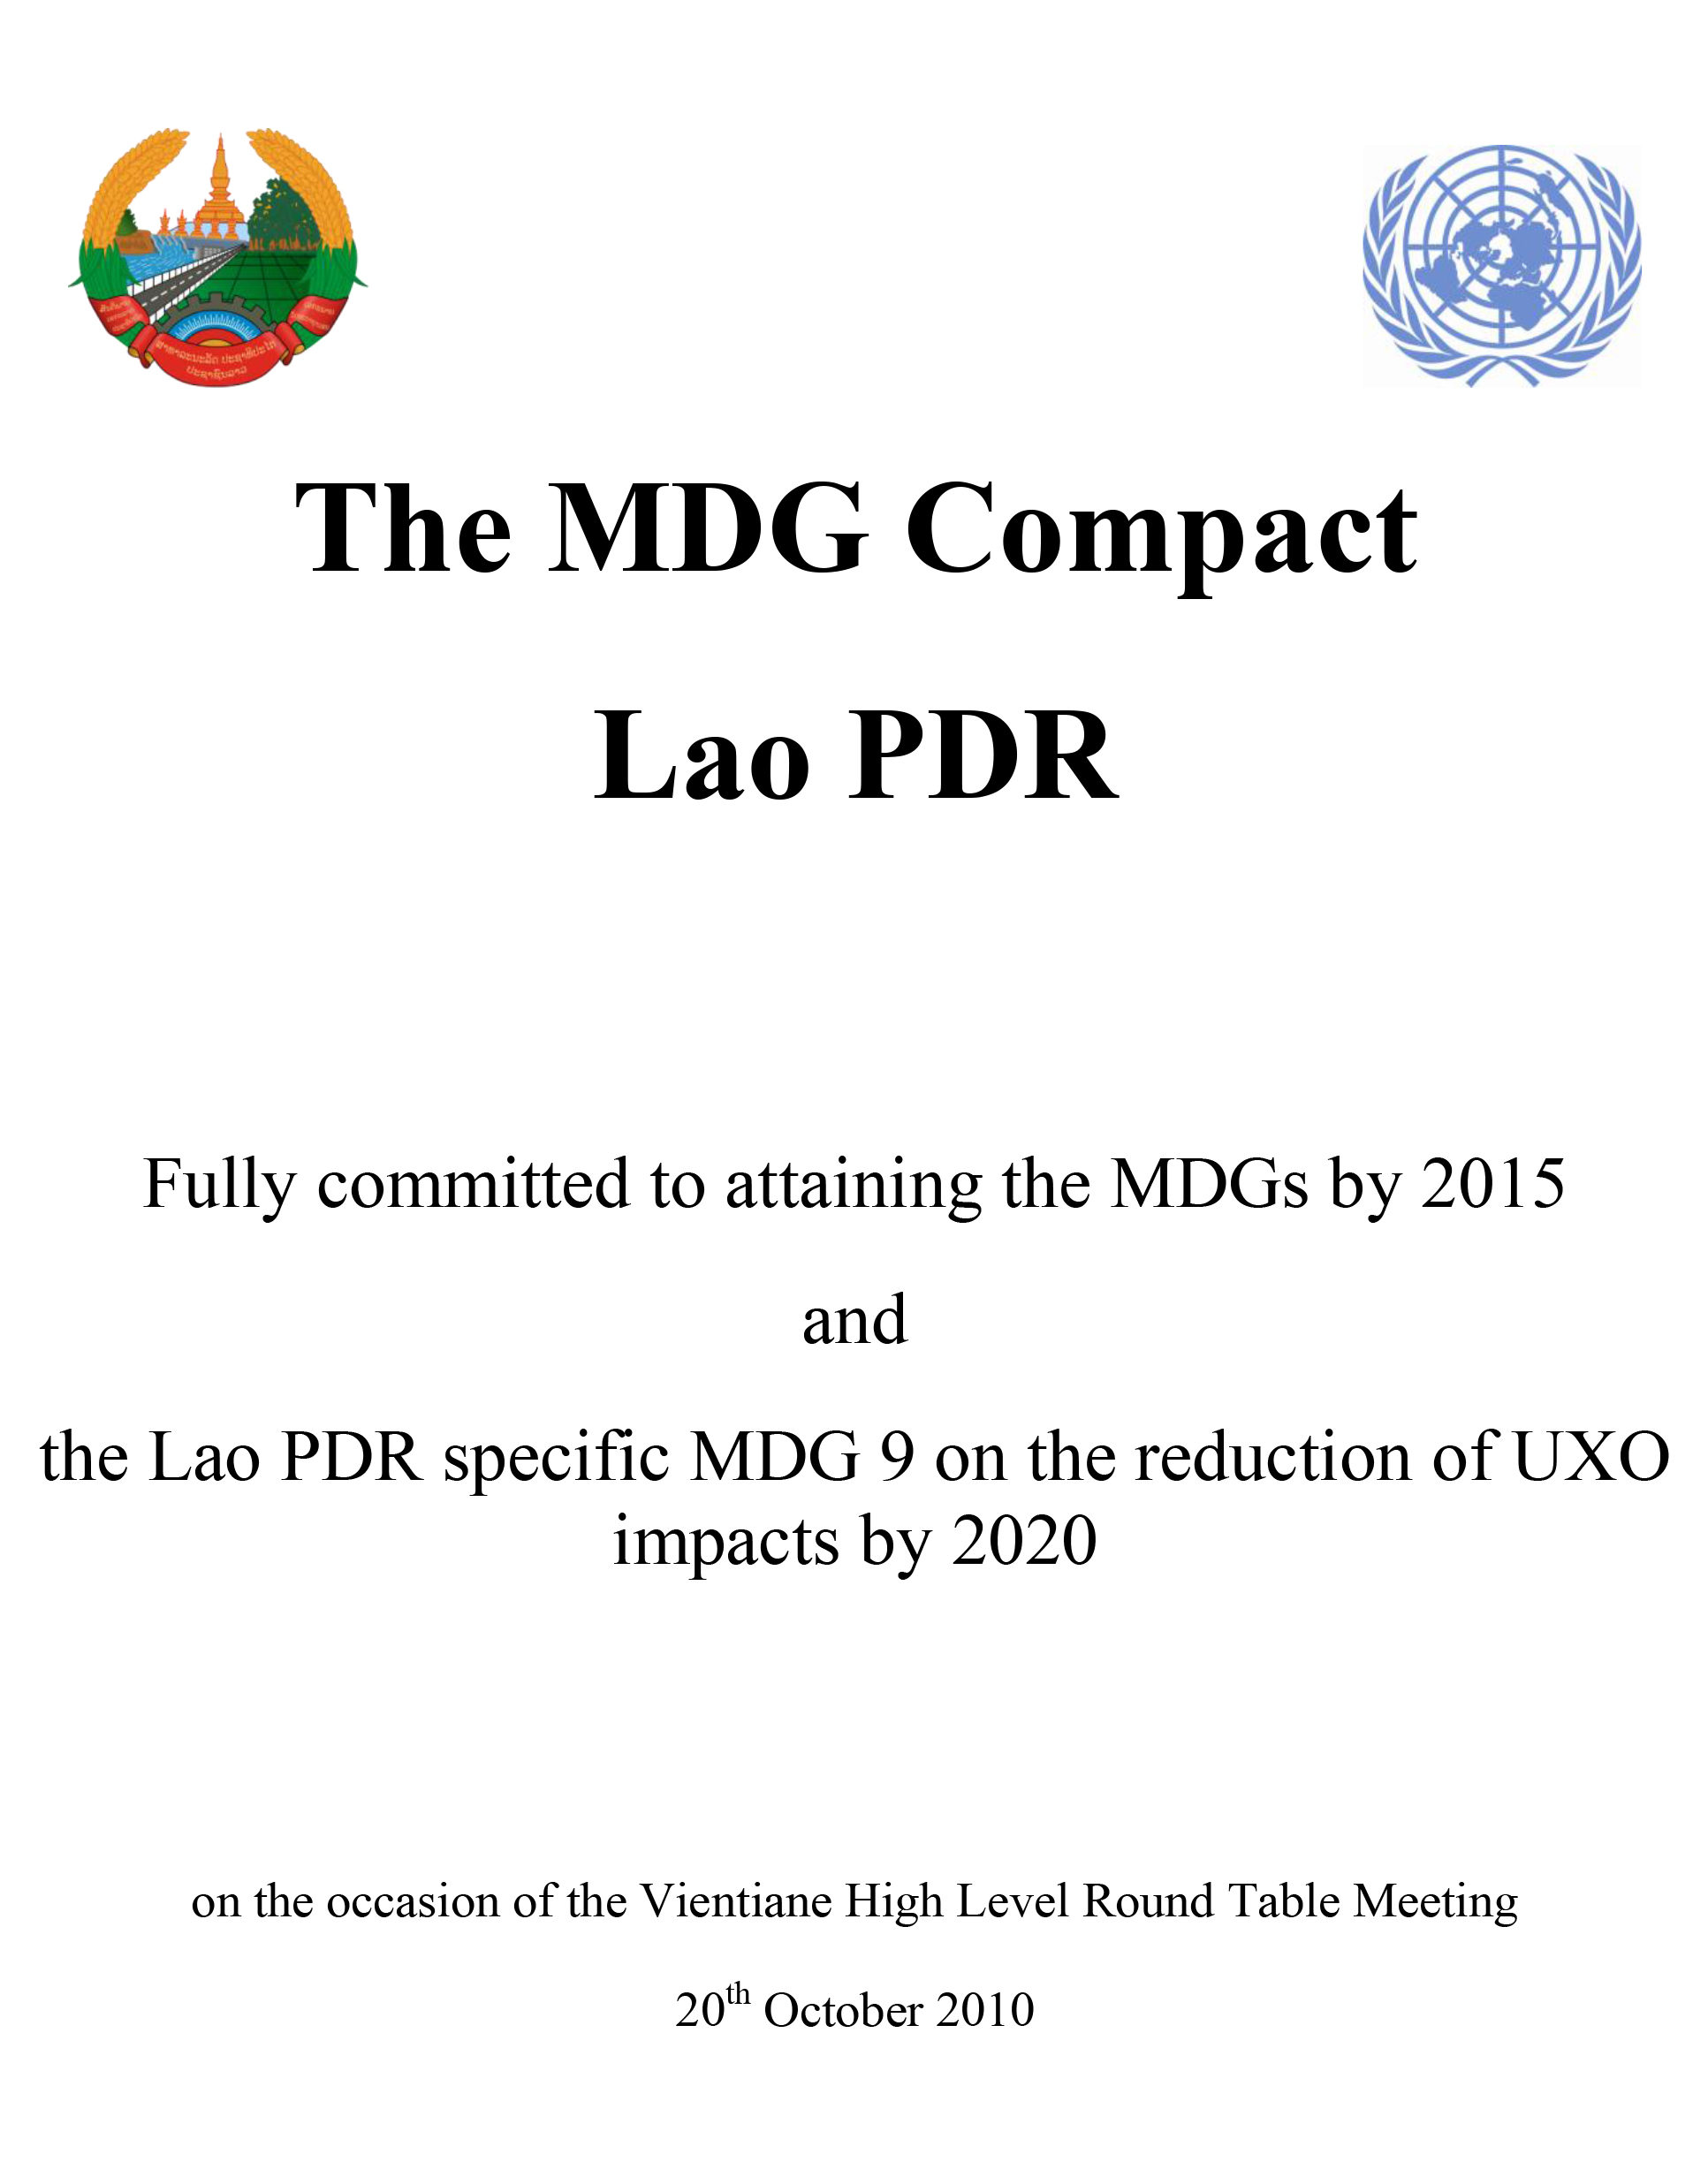 2010 MDGs Compact of Lao PDR - Cover